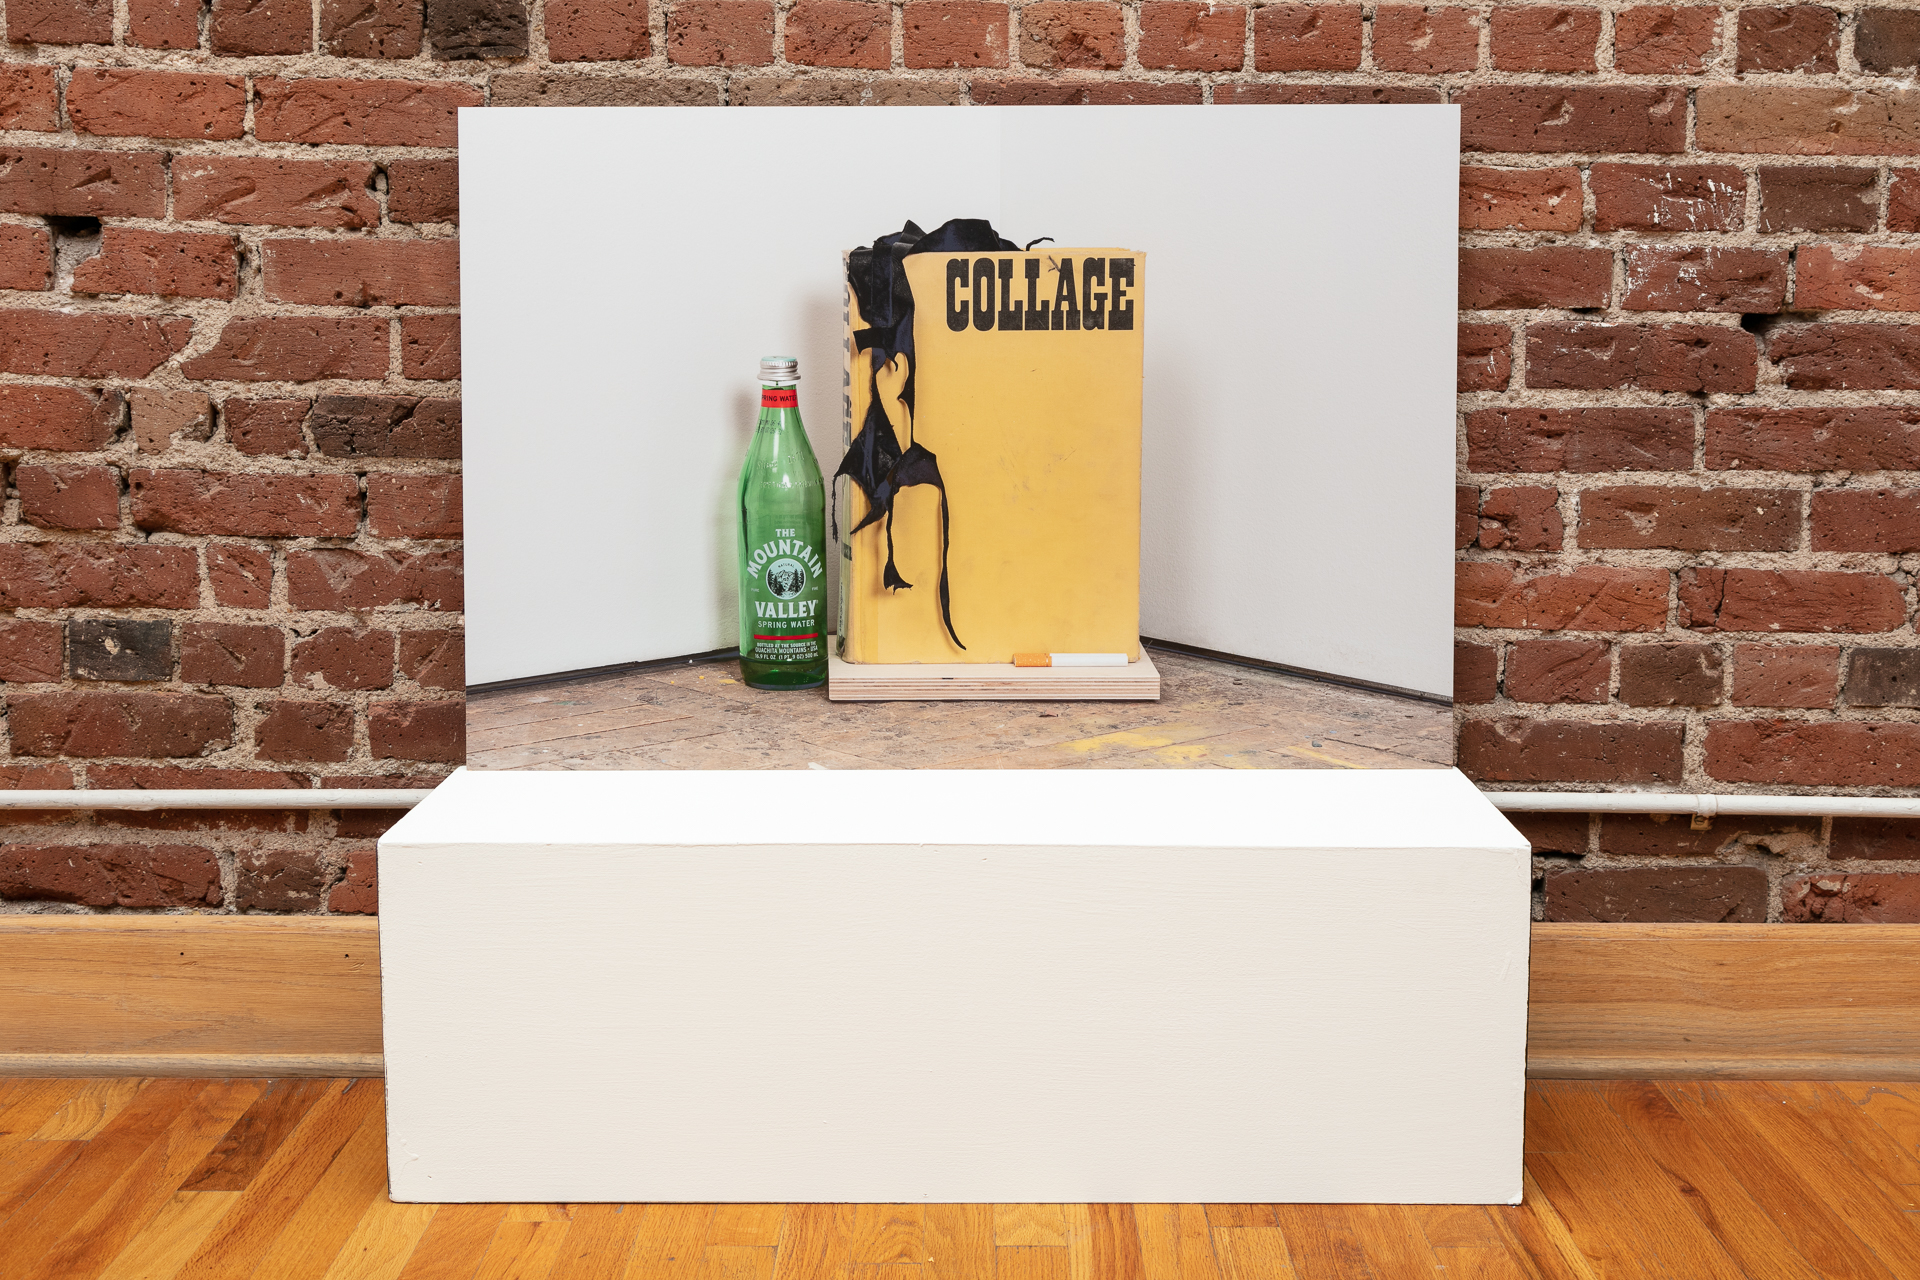 Collage Still Life by Mario Zoots